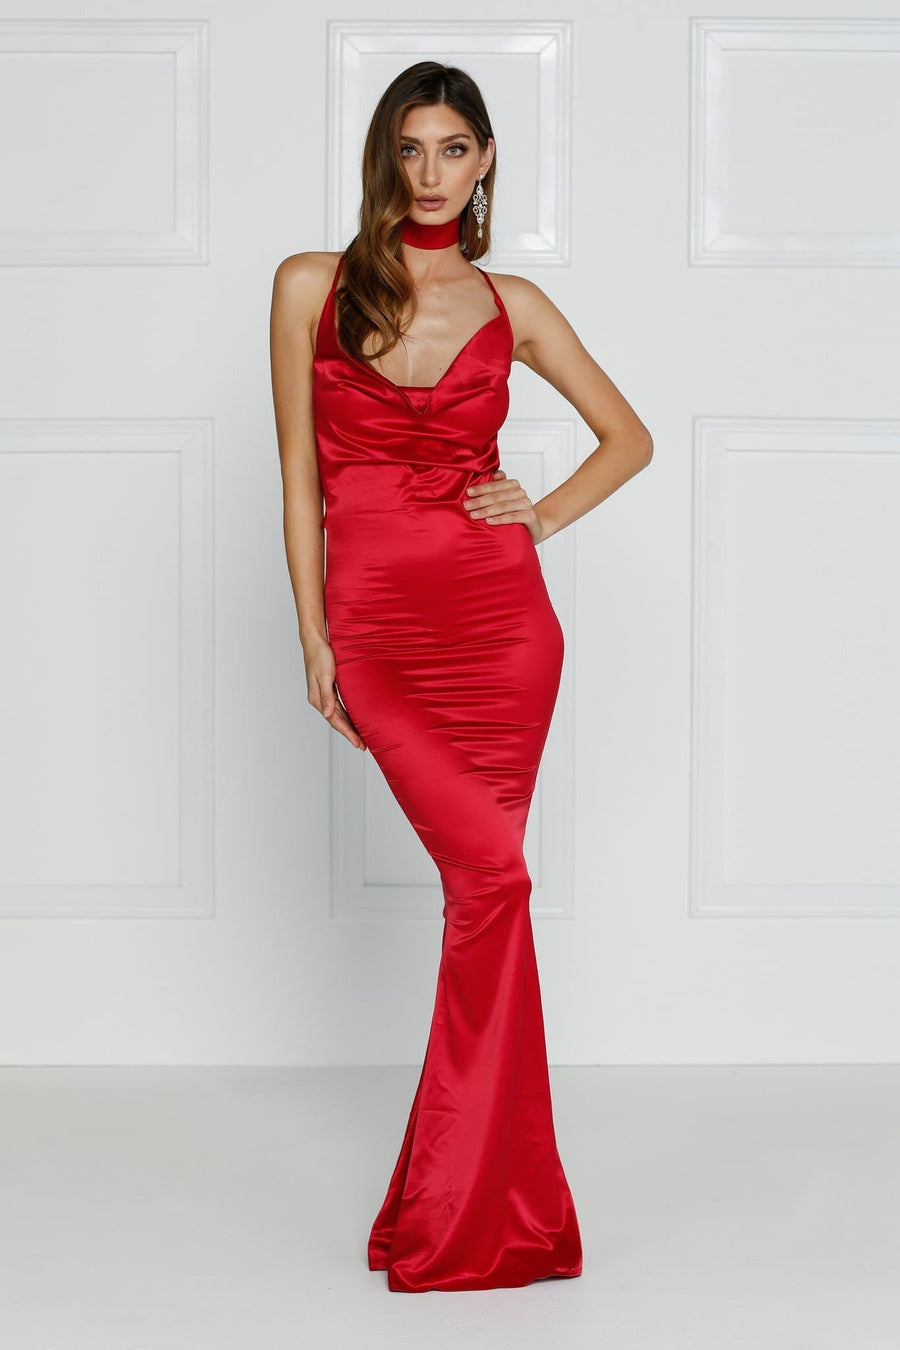 Crisantemi sexy red satin formal dress cowl neckline Alamour the label prom dress formal dress